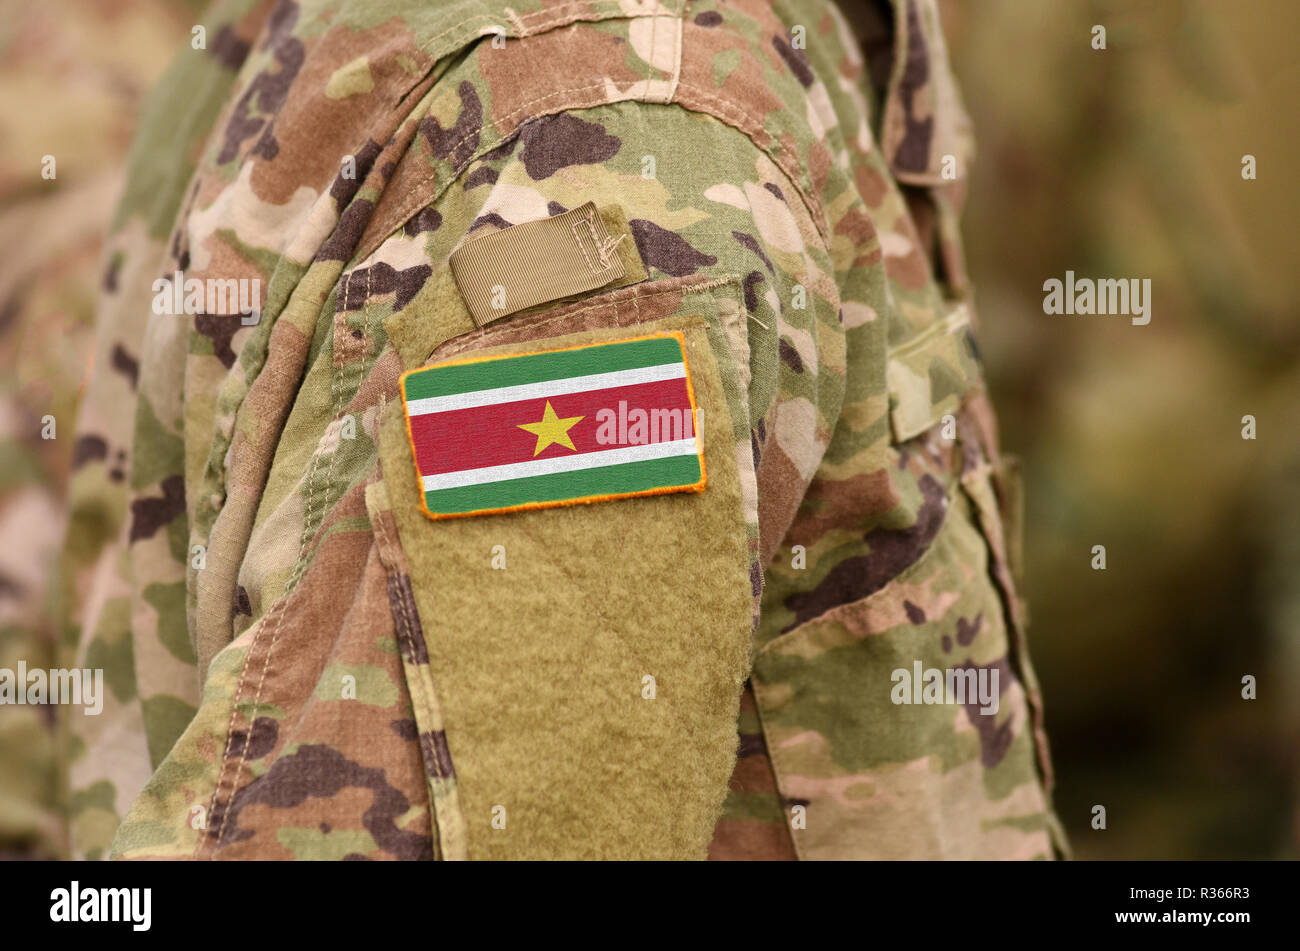 Suriname flag on soldiers arm. Suriname army (collage) - Stock Image